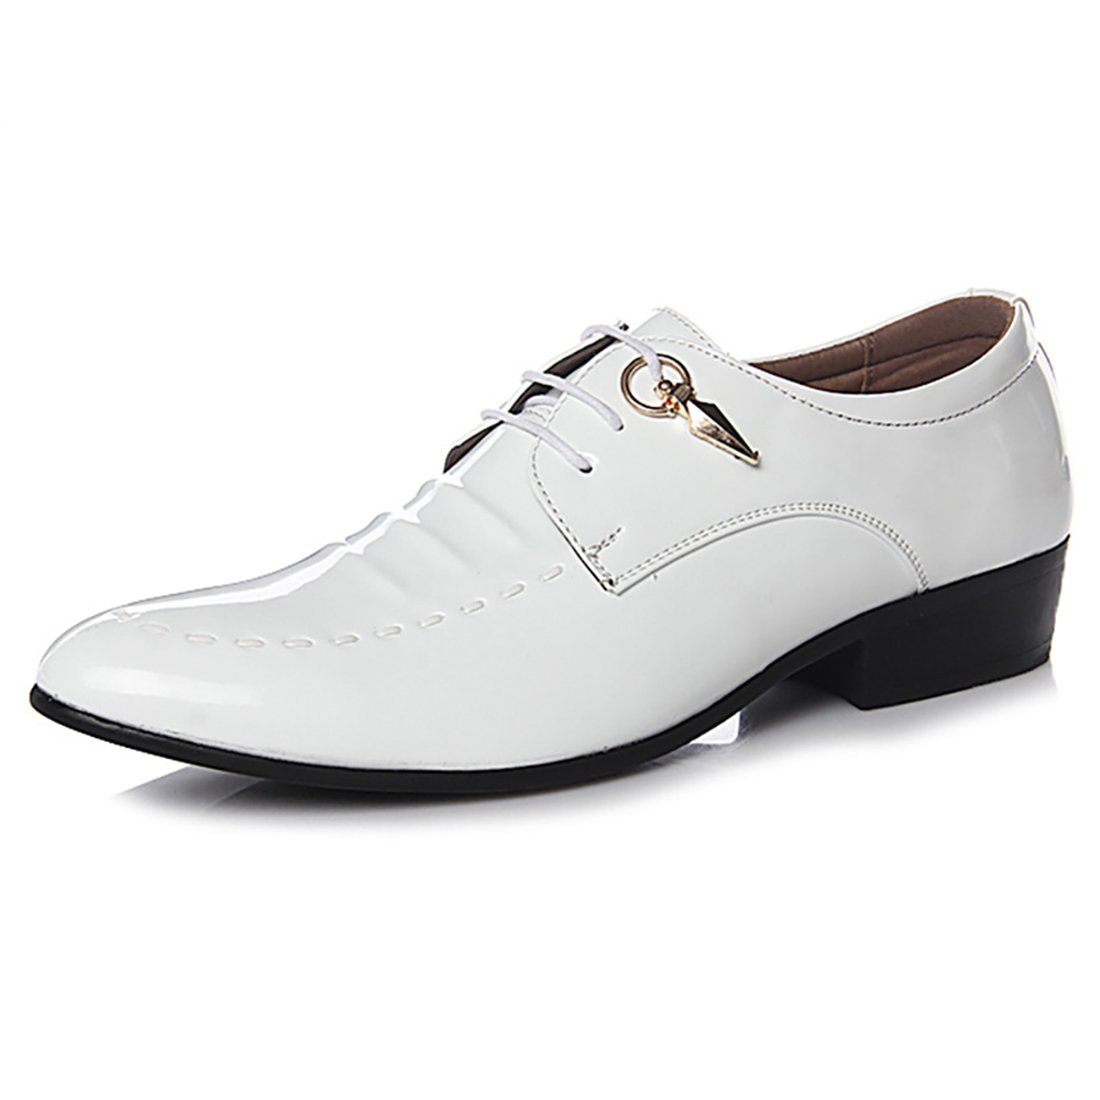 2018 Collection Spring Fall Fashion Men Dress Shoes Patent Leather Oxford Derby for Formal Leisure Wedding and Special Occasion (8.5, White 1)